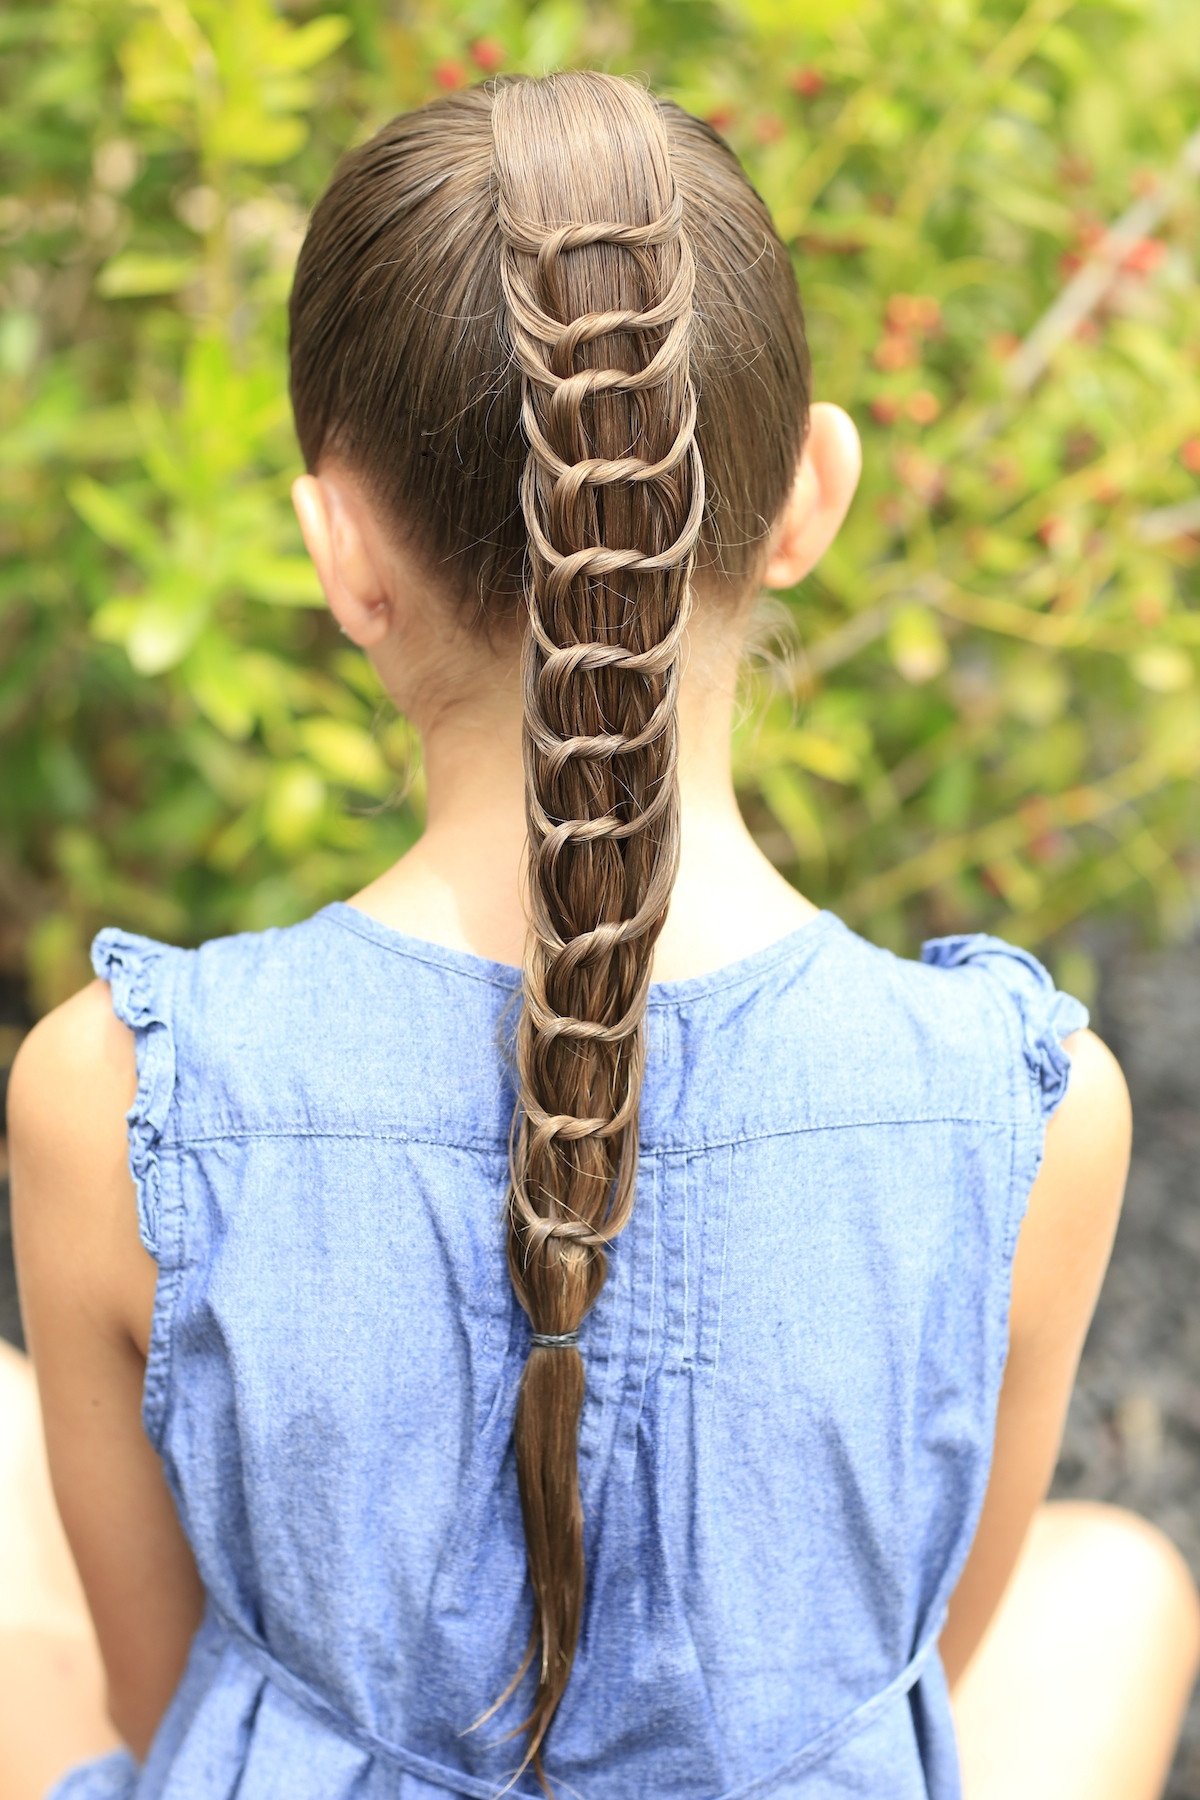 Best ideas about Cute Softball Hairstyles . Save or Pin The Knotted Ponytail Hairstyles for Girls Now.